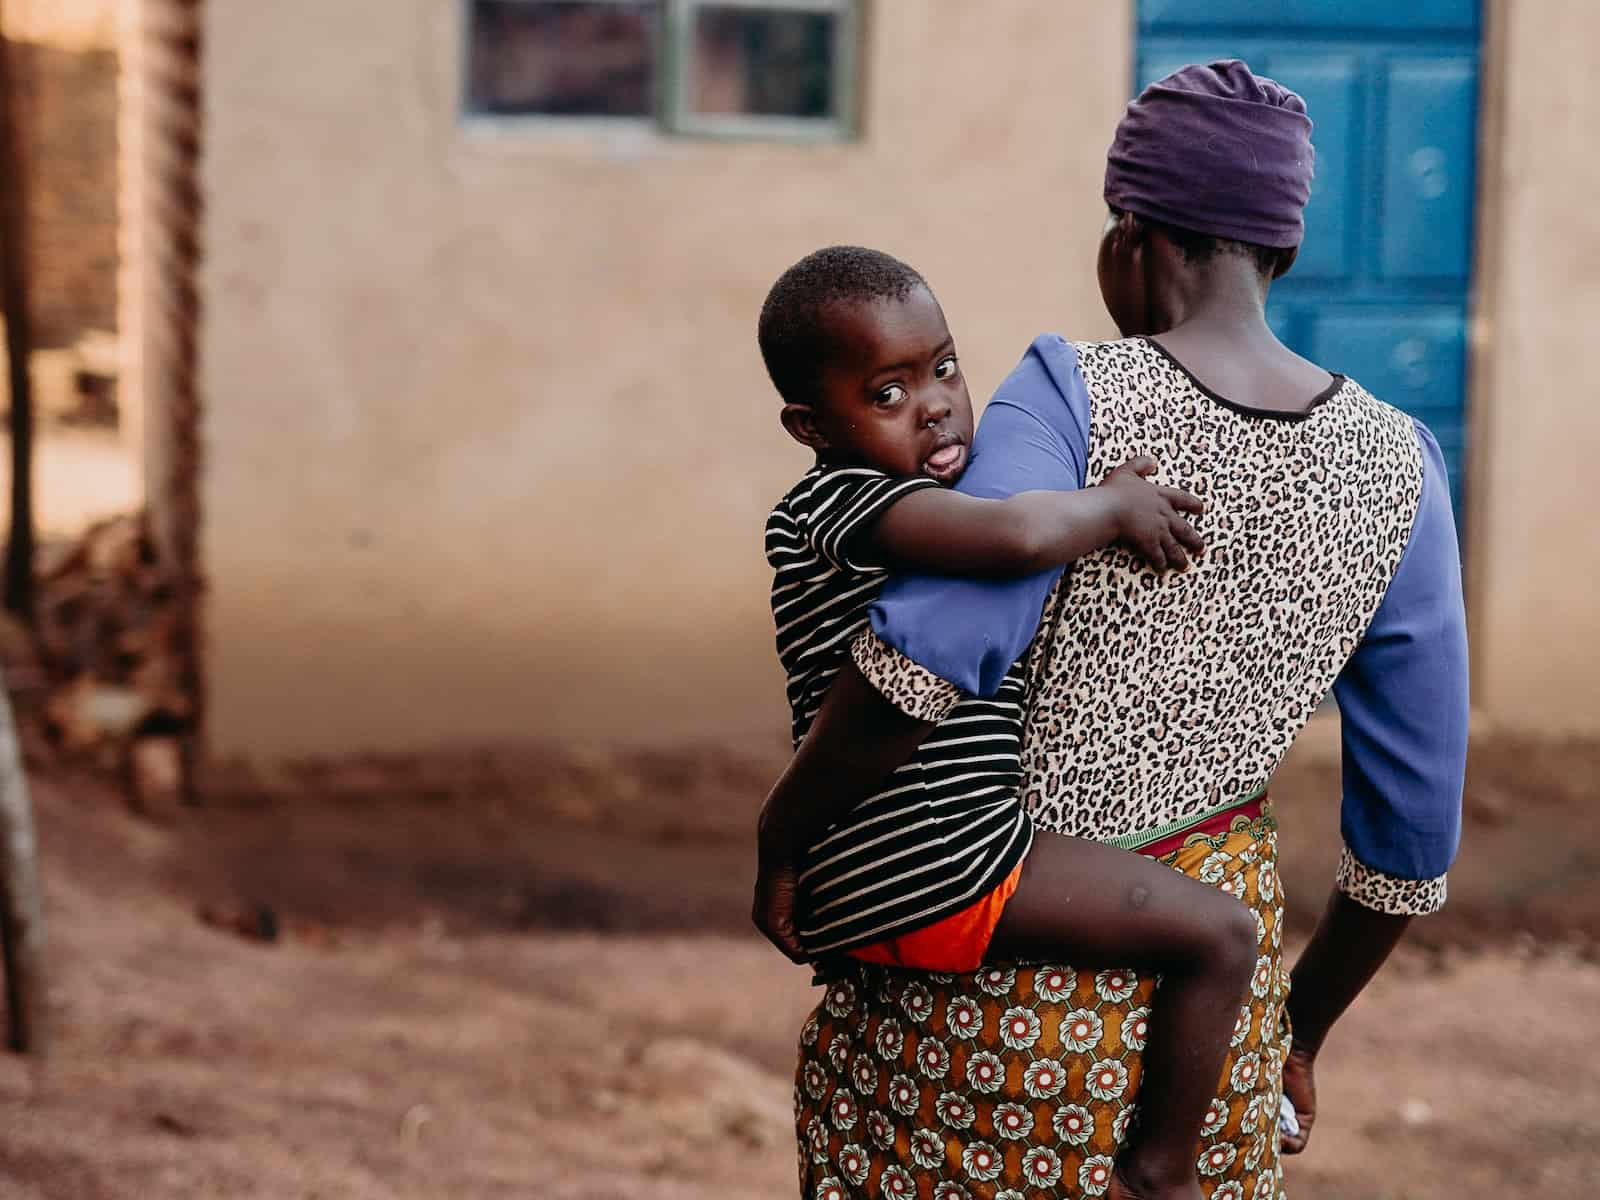 A woman walking towards a house holds a child in her arms.